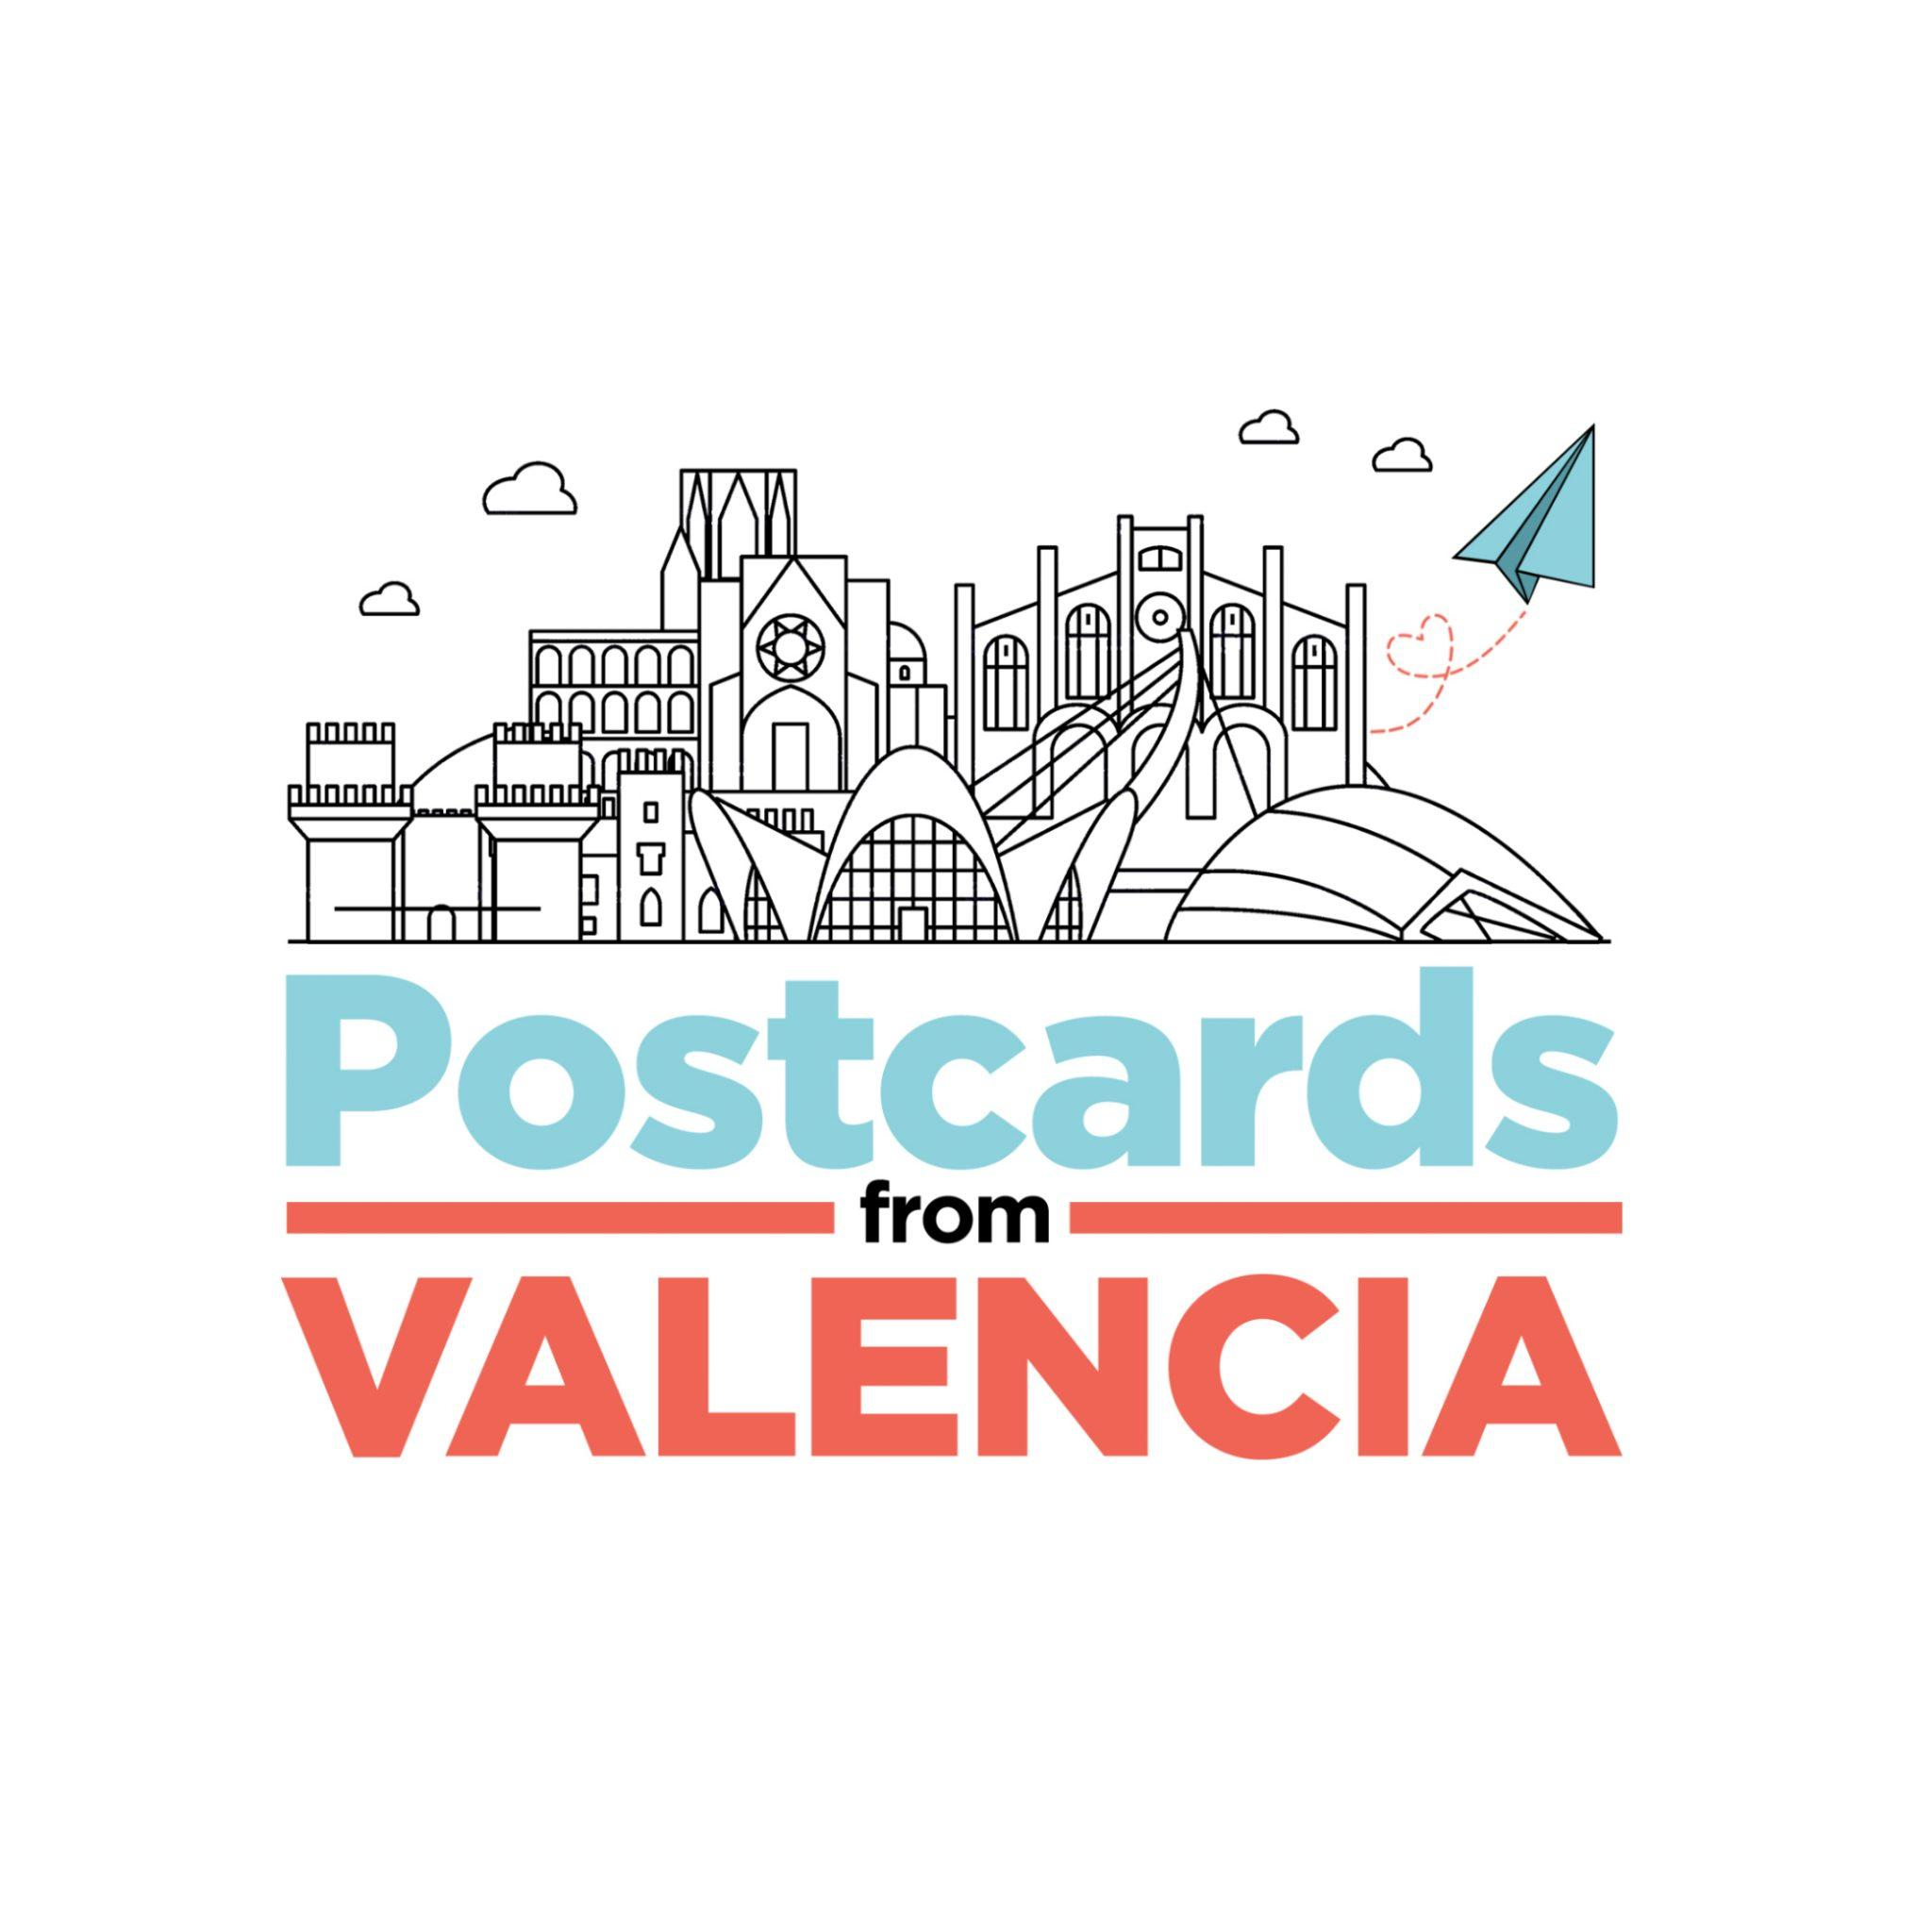 Postcards from Valencia